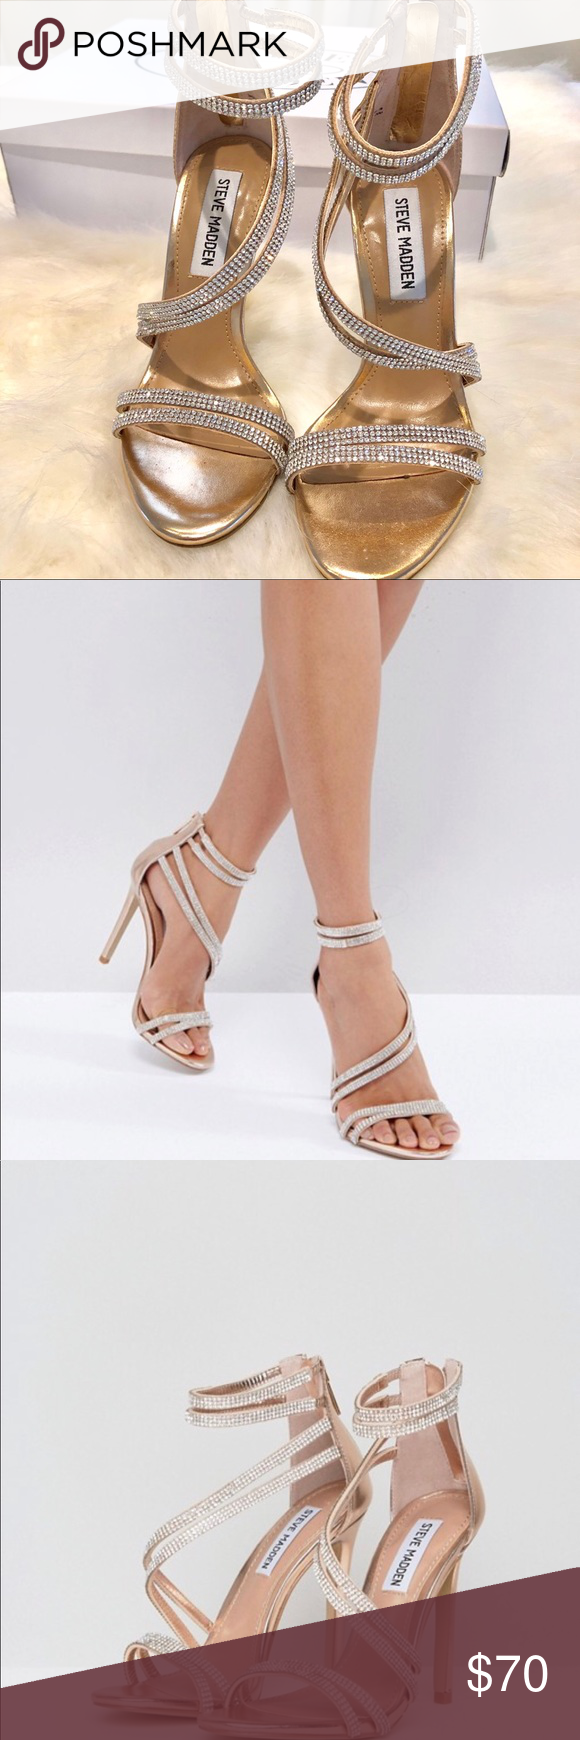 Steve Madden Sweetest heels Steve Madden Sweetest sandals Color rose gold  Size 5 Worn exactly 1 time in excellent condition Comes with original box  Perfect ... ae4e06be2e12